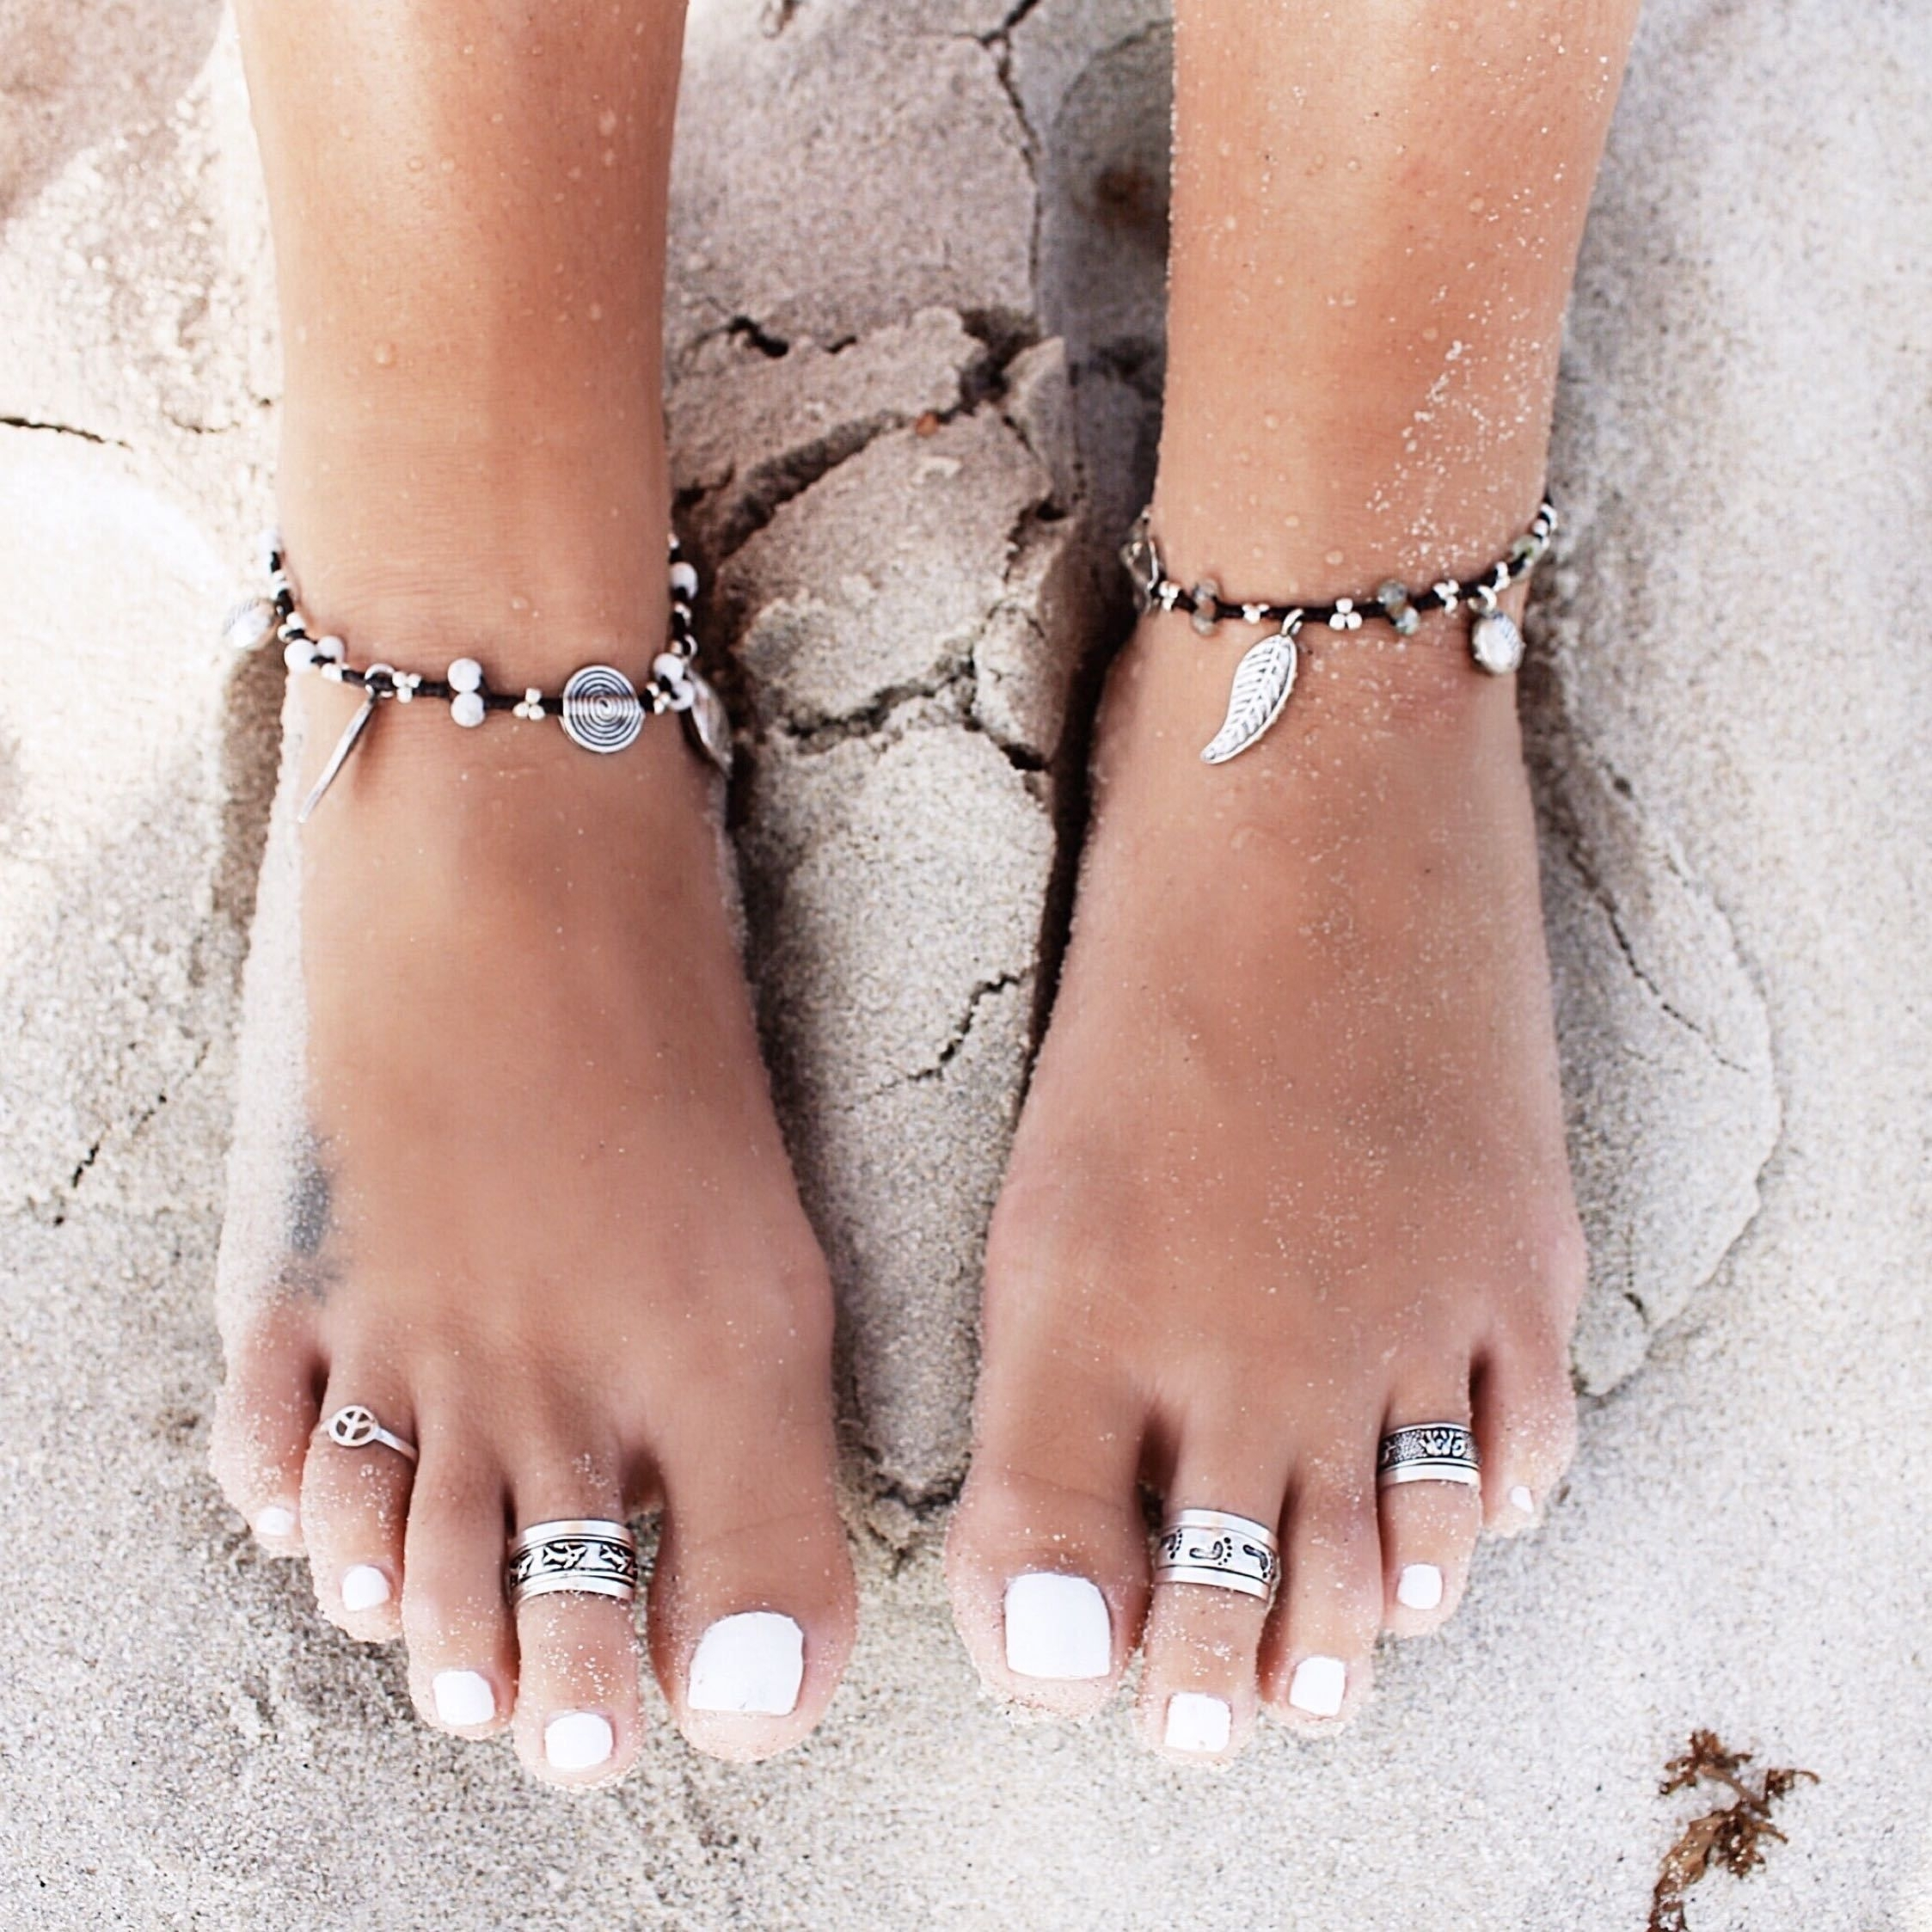 ≫∙∙Boho, Feathers + Gypsy Spirit∙∙≪ | Nails | Pinterest Within Most Recent Stackable Toe Rings (View 1 of 15)